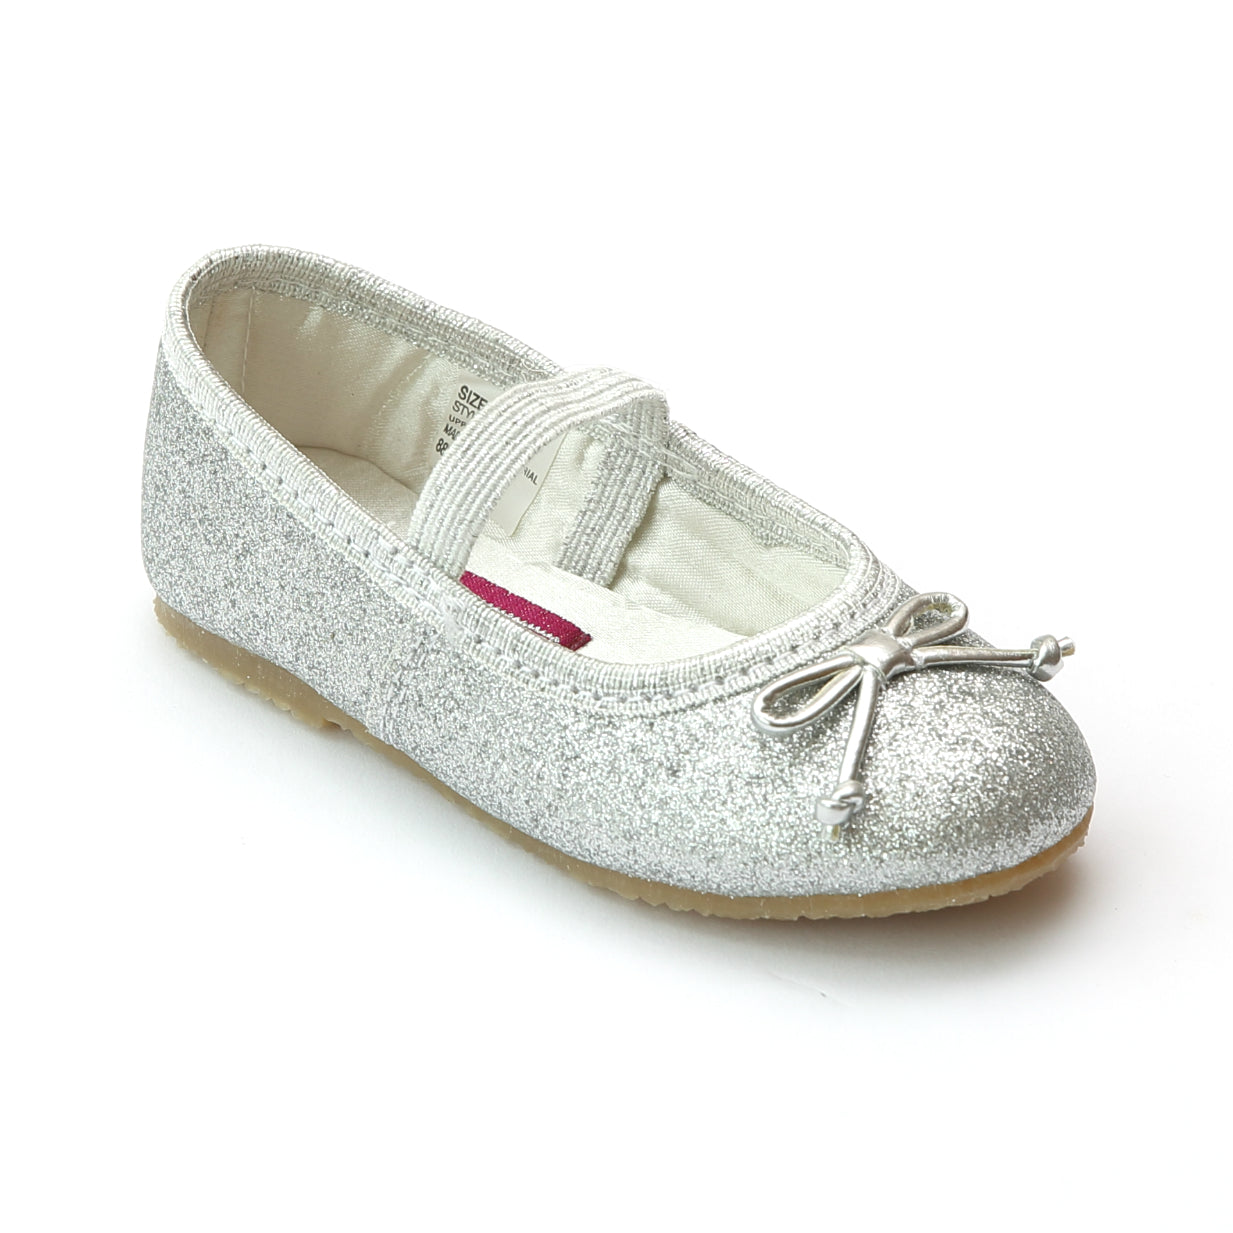 6f93d18932a4 L'Amour Shoes Girls Glitter Silver Classic Ballet Flats with Bow ...